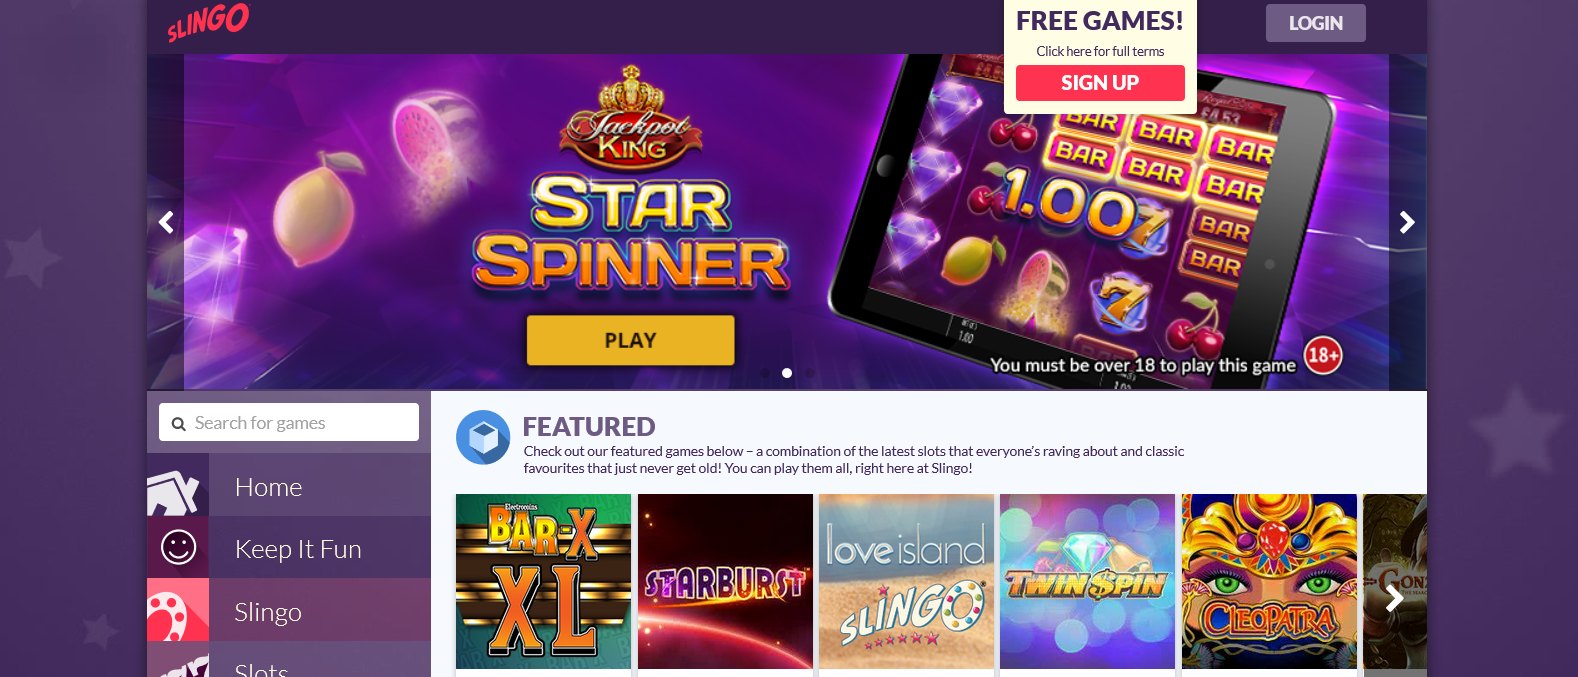 Spin million casino forum